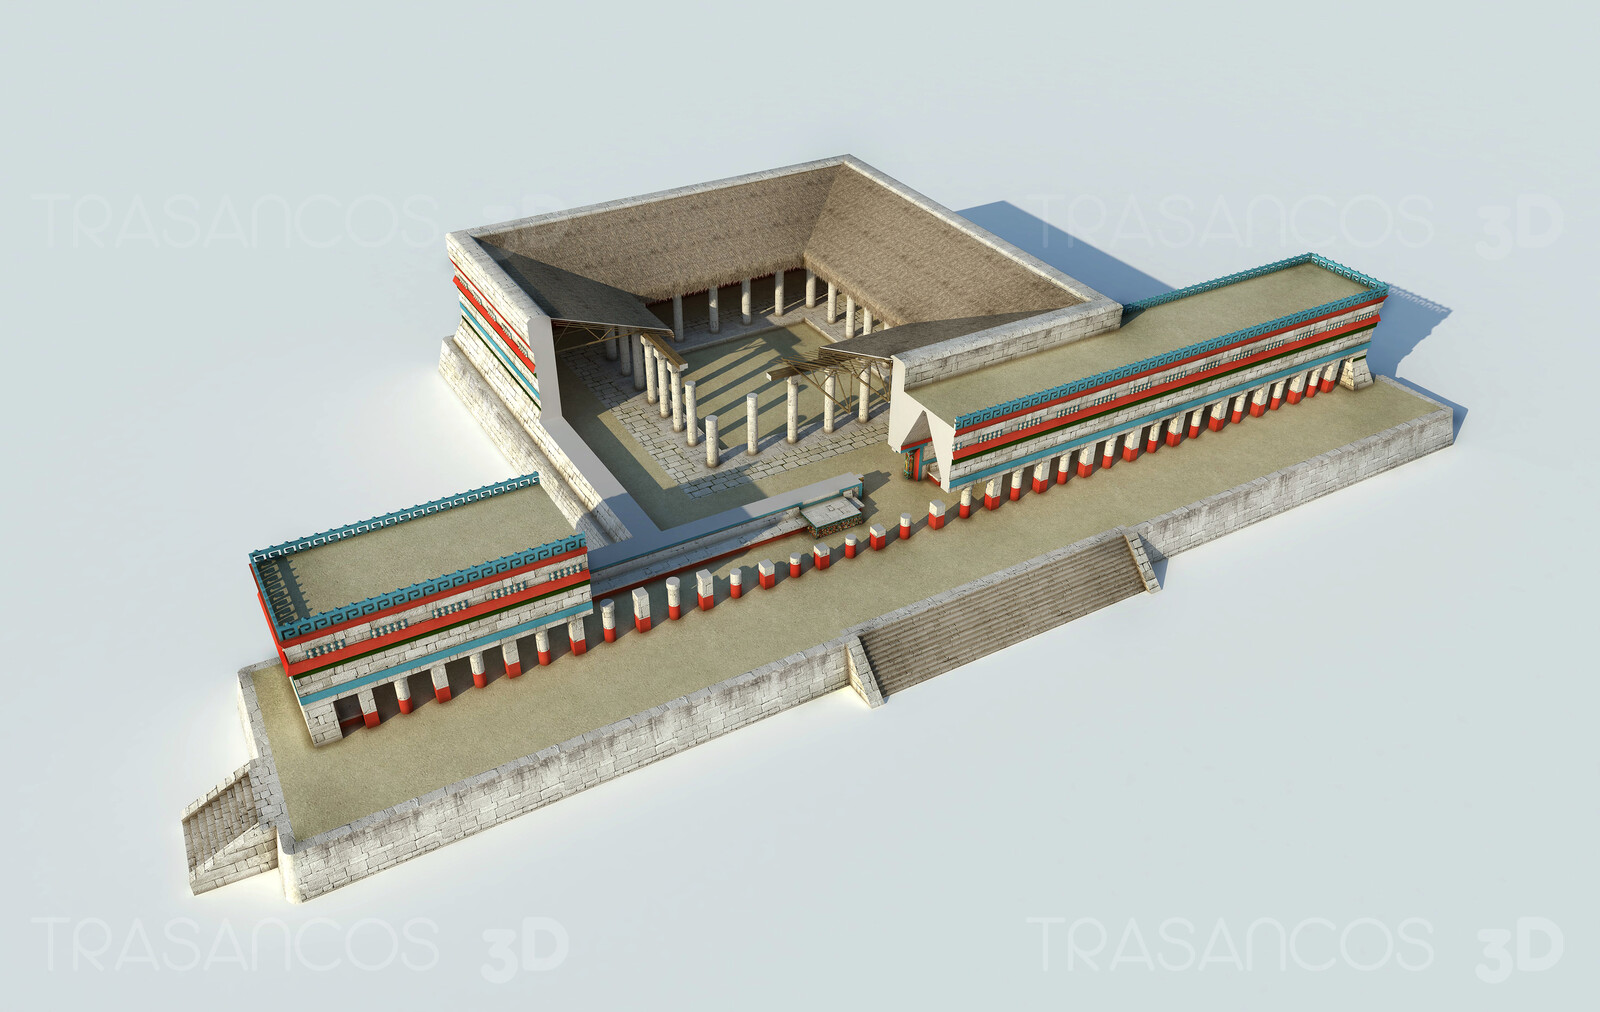 Cut away of the reconstructed mayan market of Chichen Itza. Modeled in collaboration with: - Carlos Paz